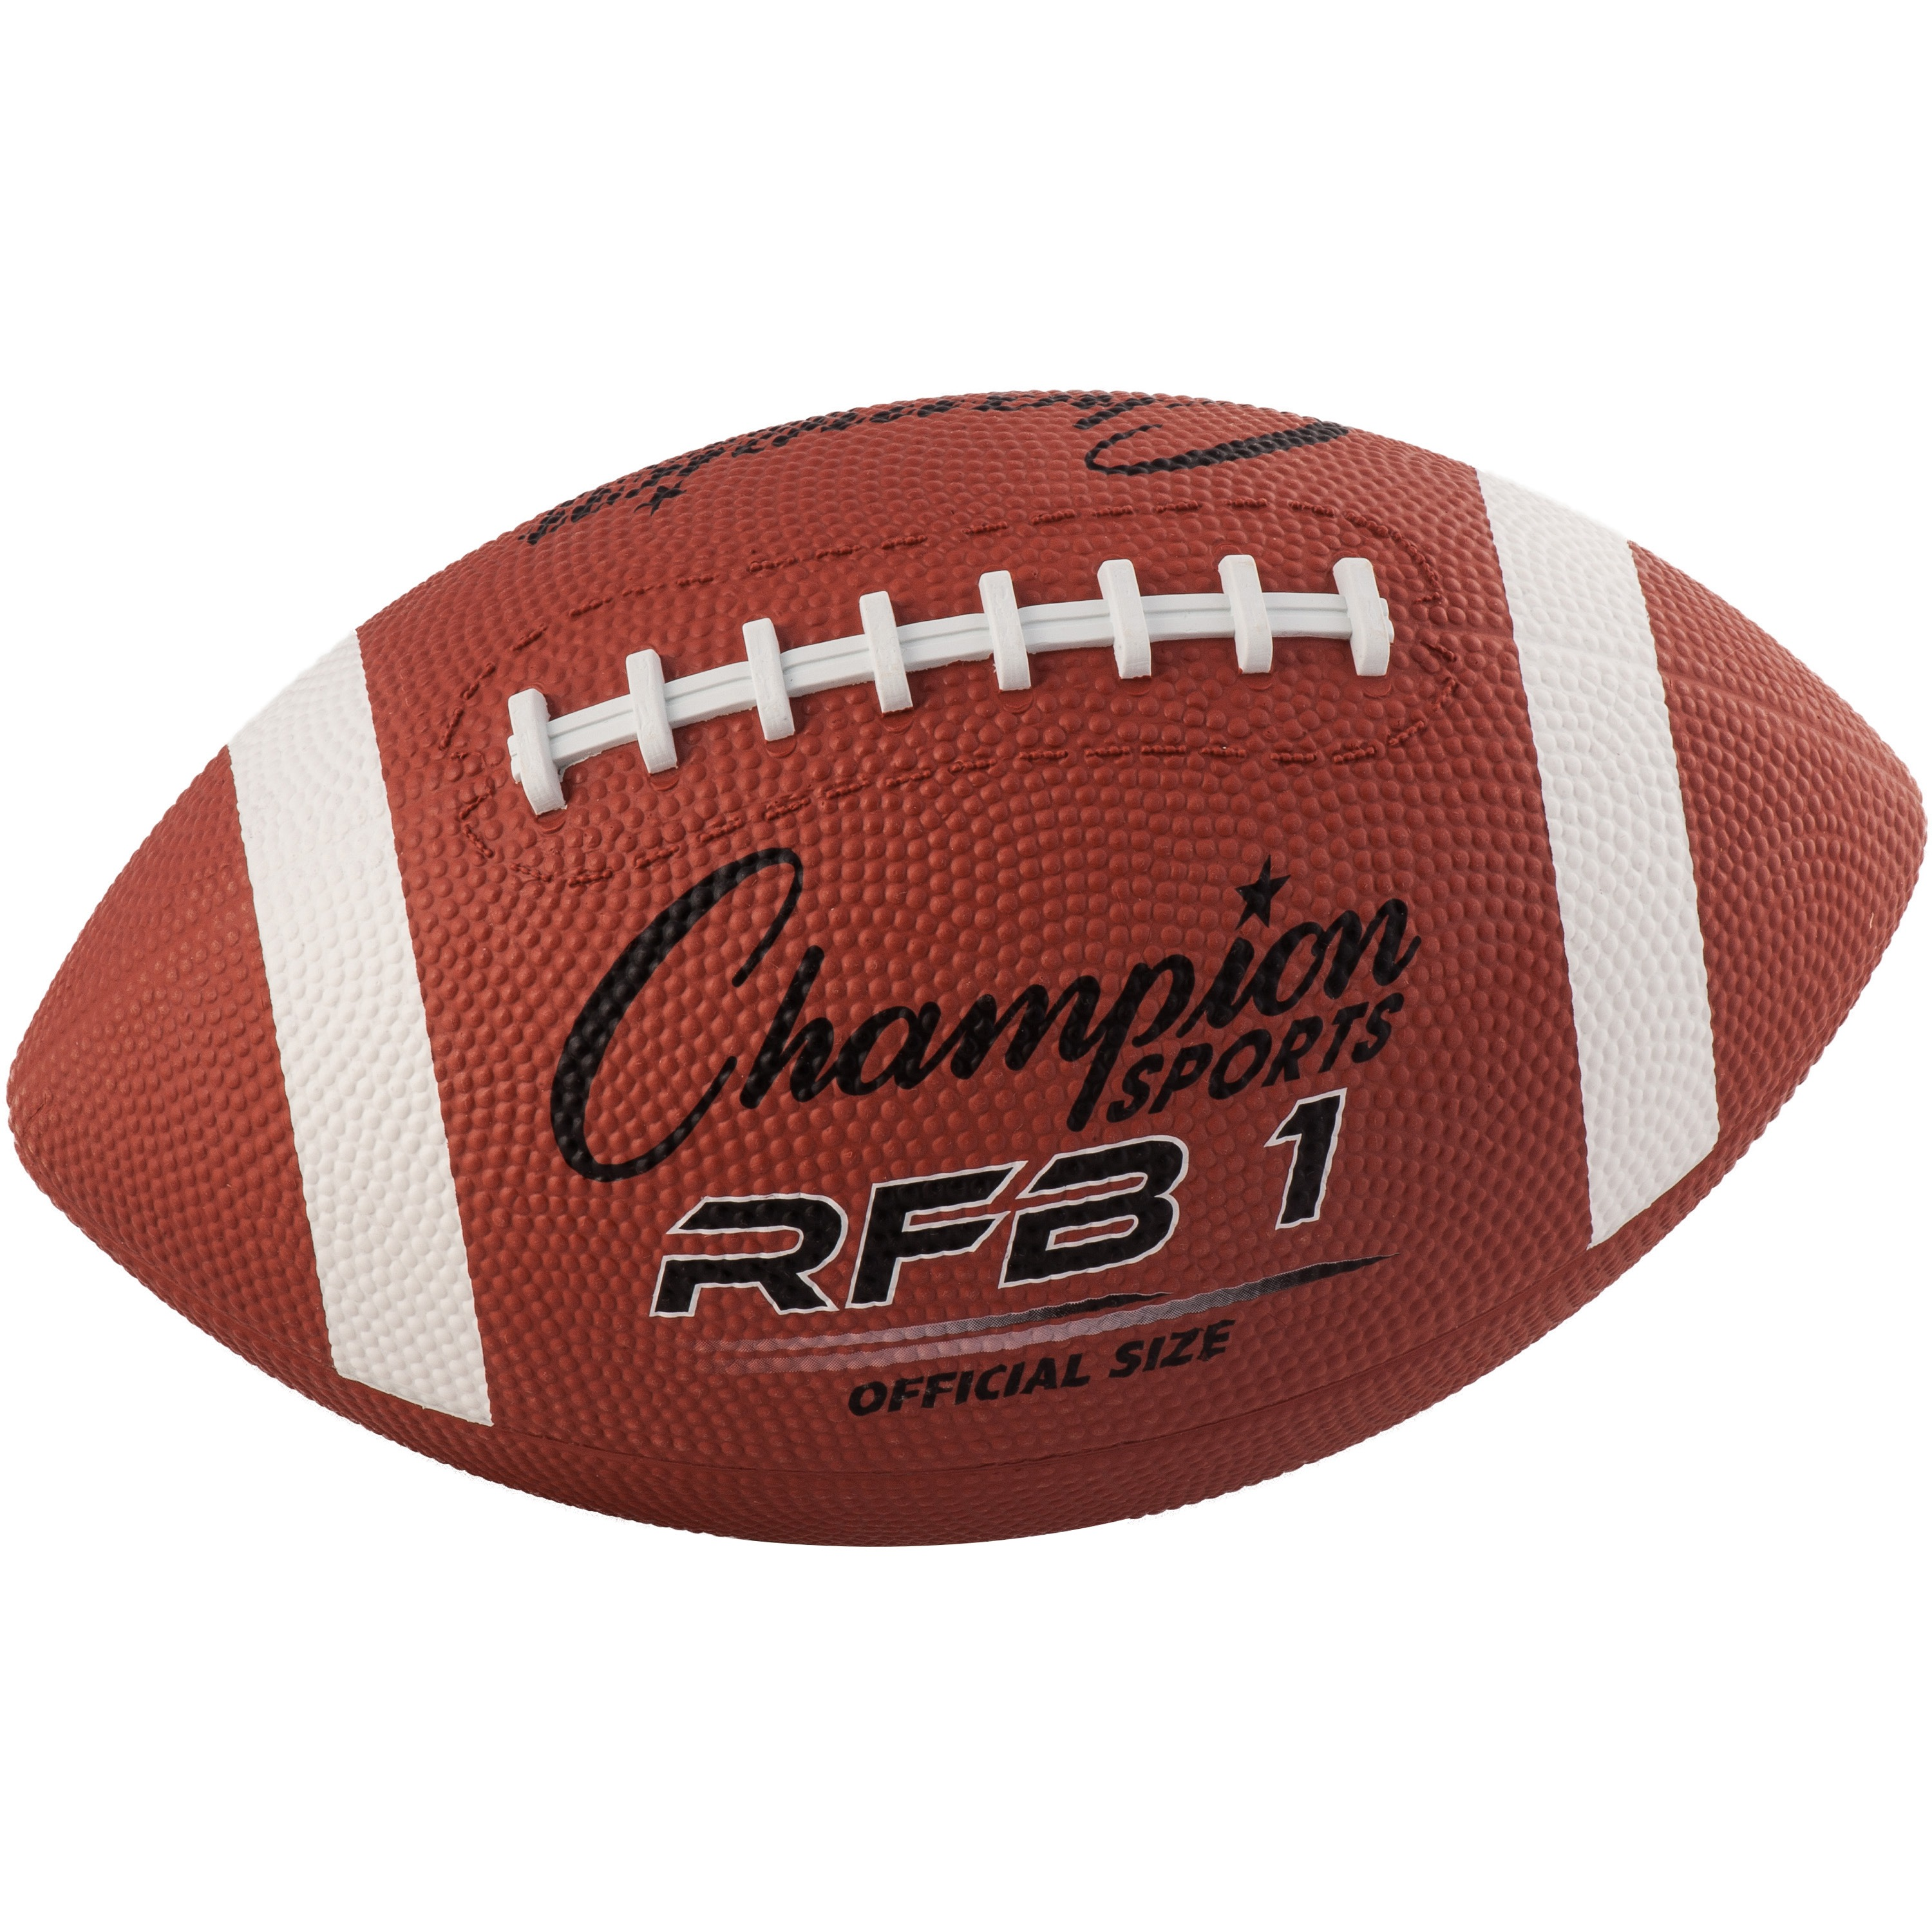 Champion Sport s Official Size Rubber Football, Brown, 1 Each (Quantity) by CHAMPION SPORT